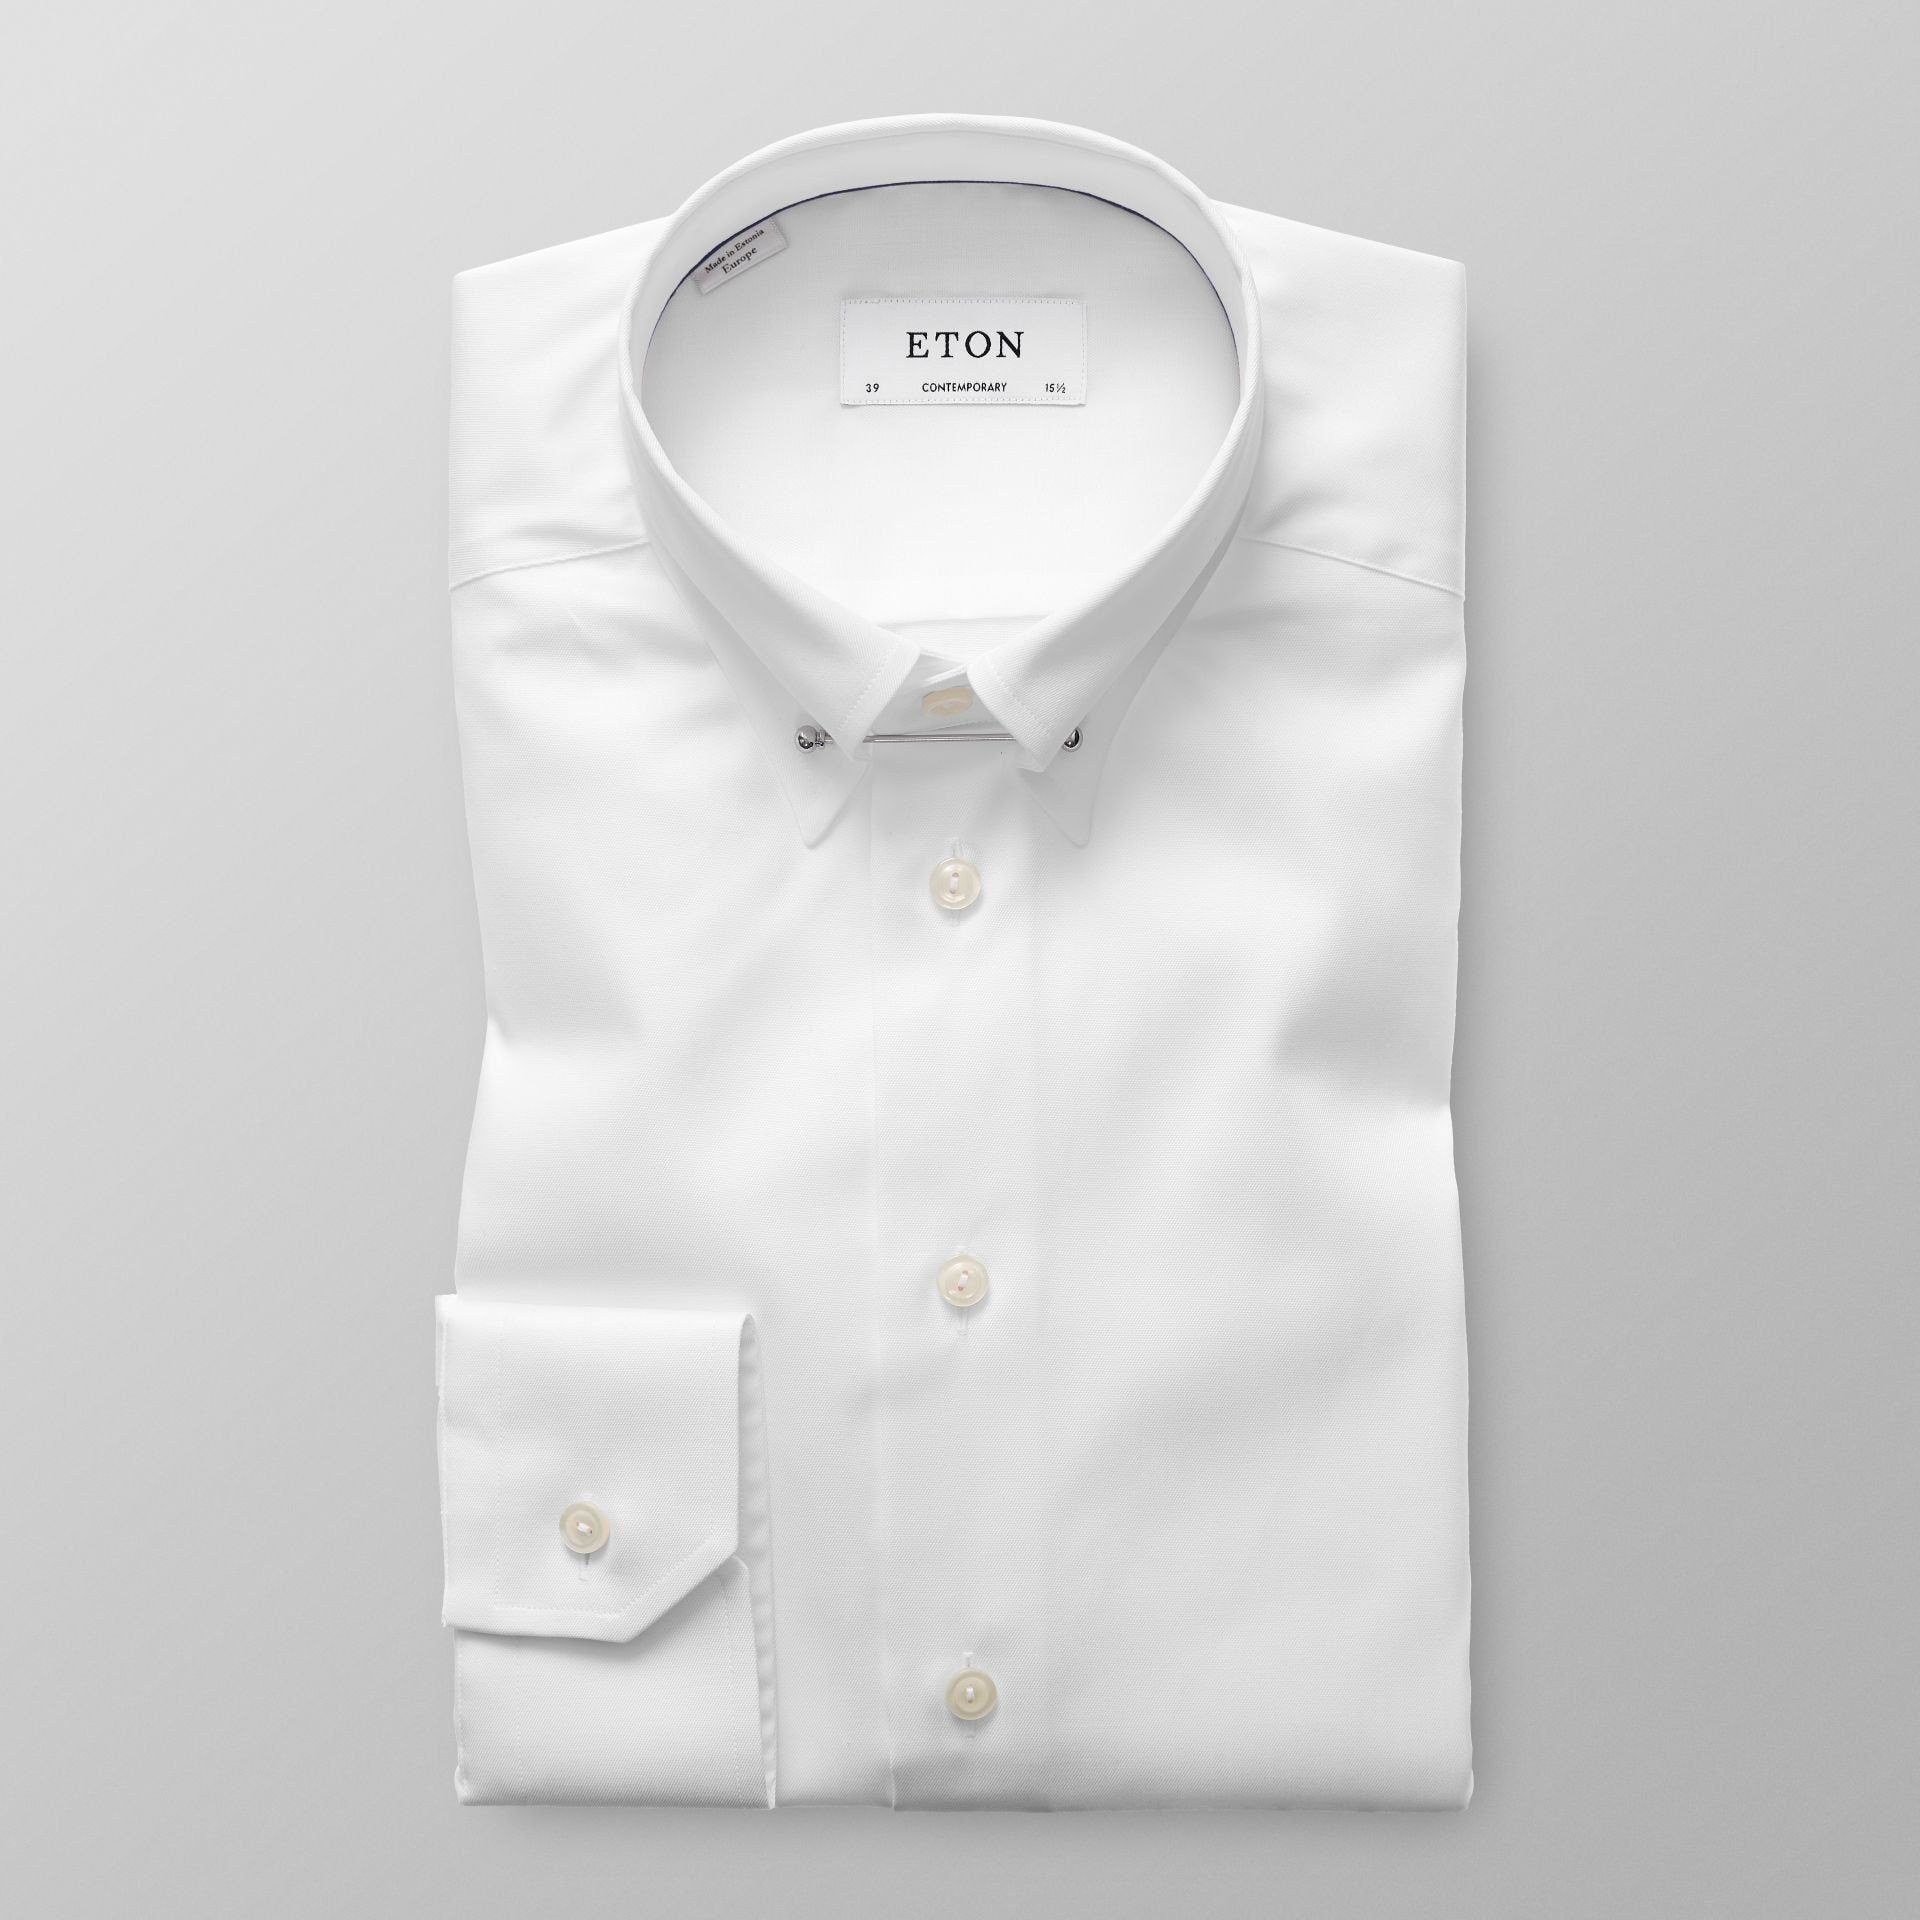 Eton white pin collar shirt